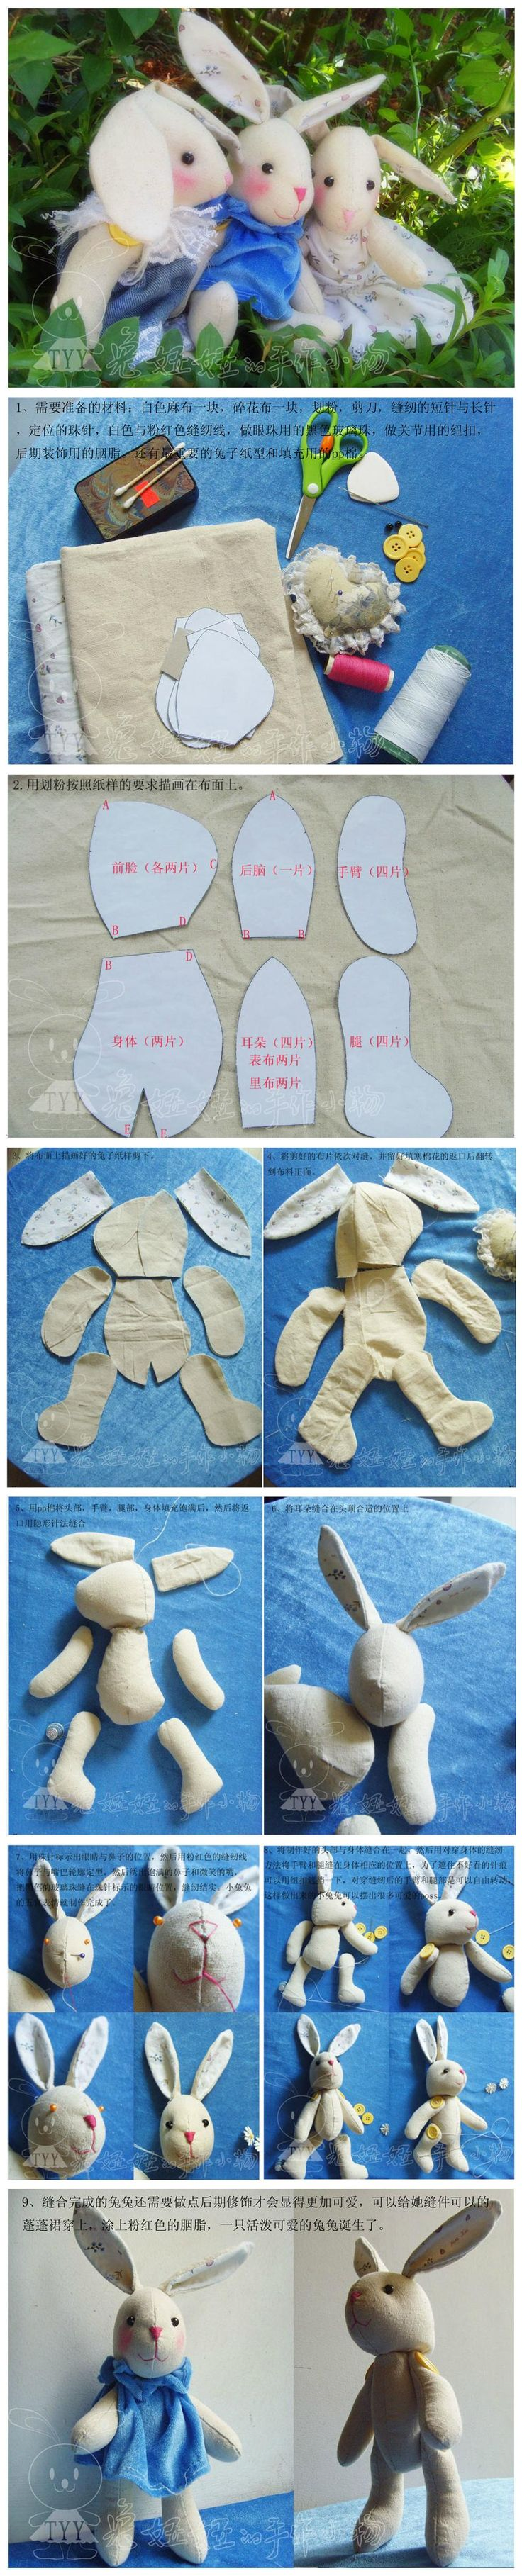 Tutorial de conejitos  Easy to follow picture tutorial. Lovely bunnies.